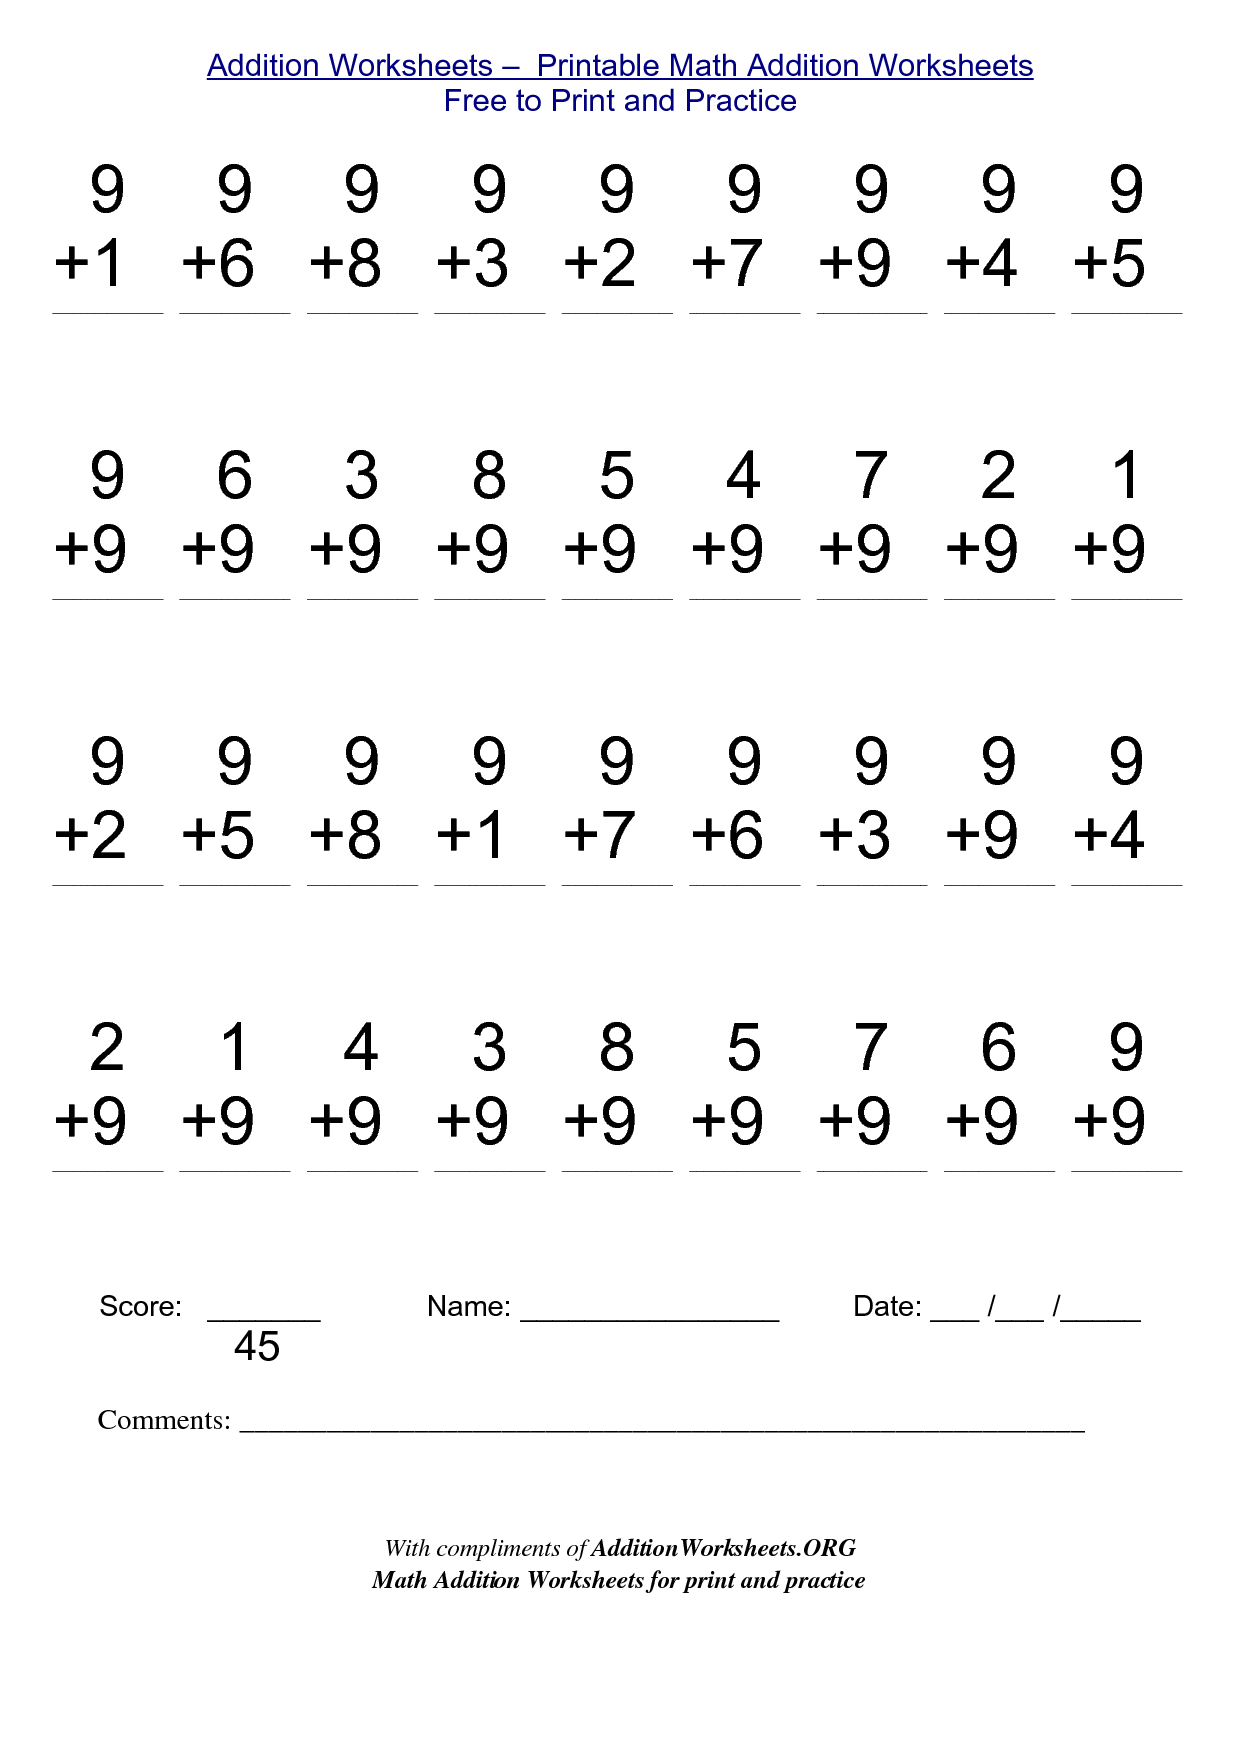 Math Worksheets for Free to Print Alot ME – Halloween Math Worksheets Grade 2